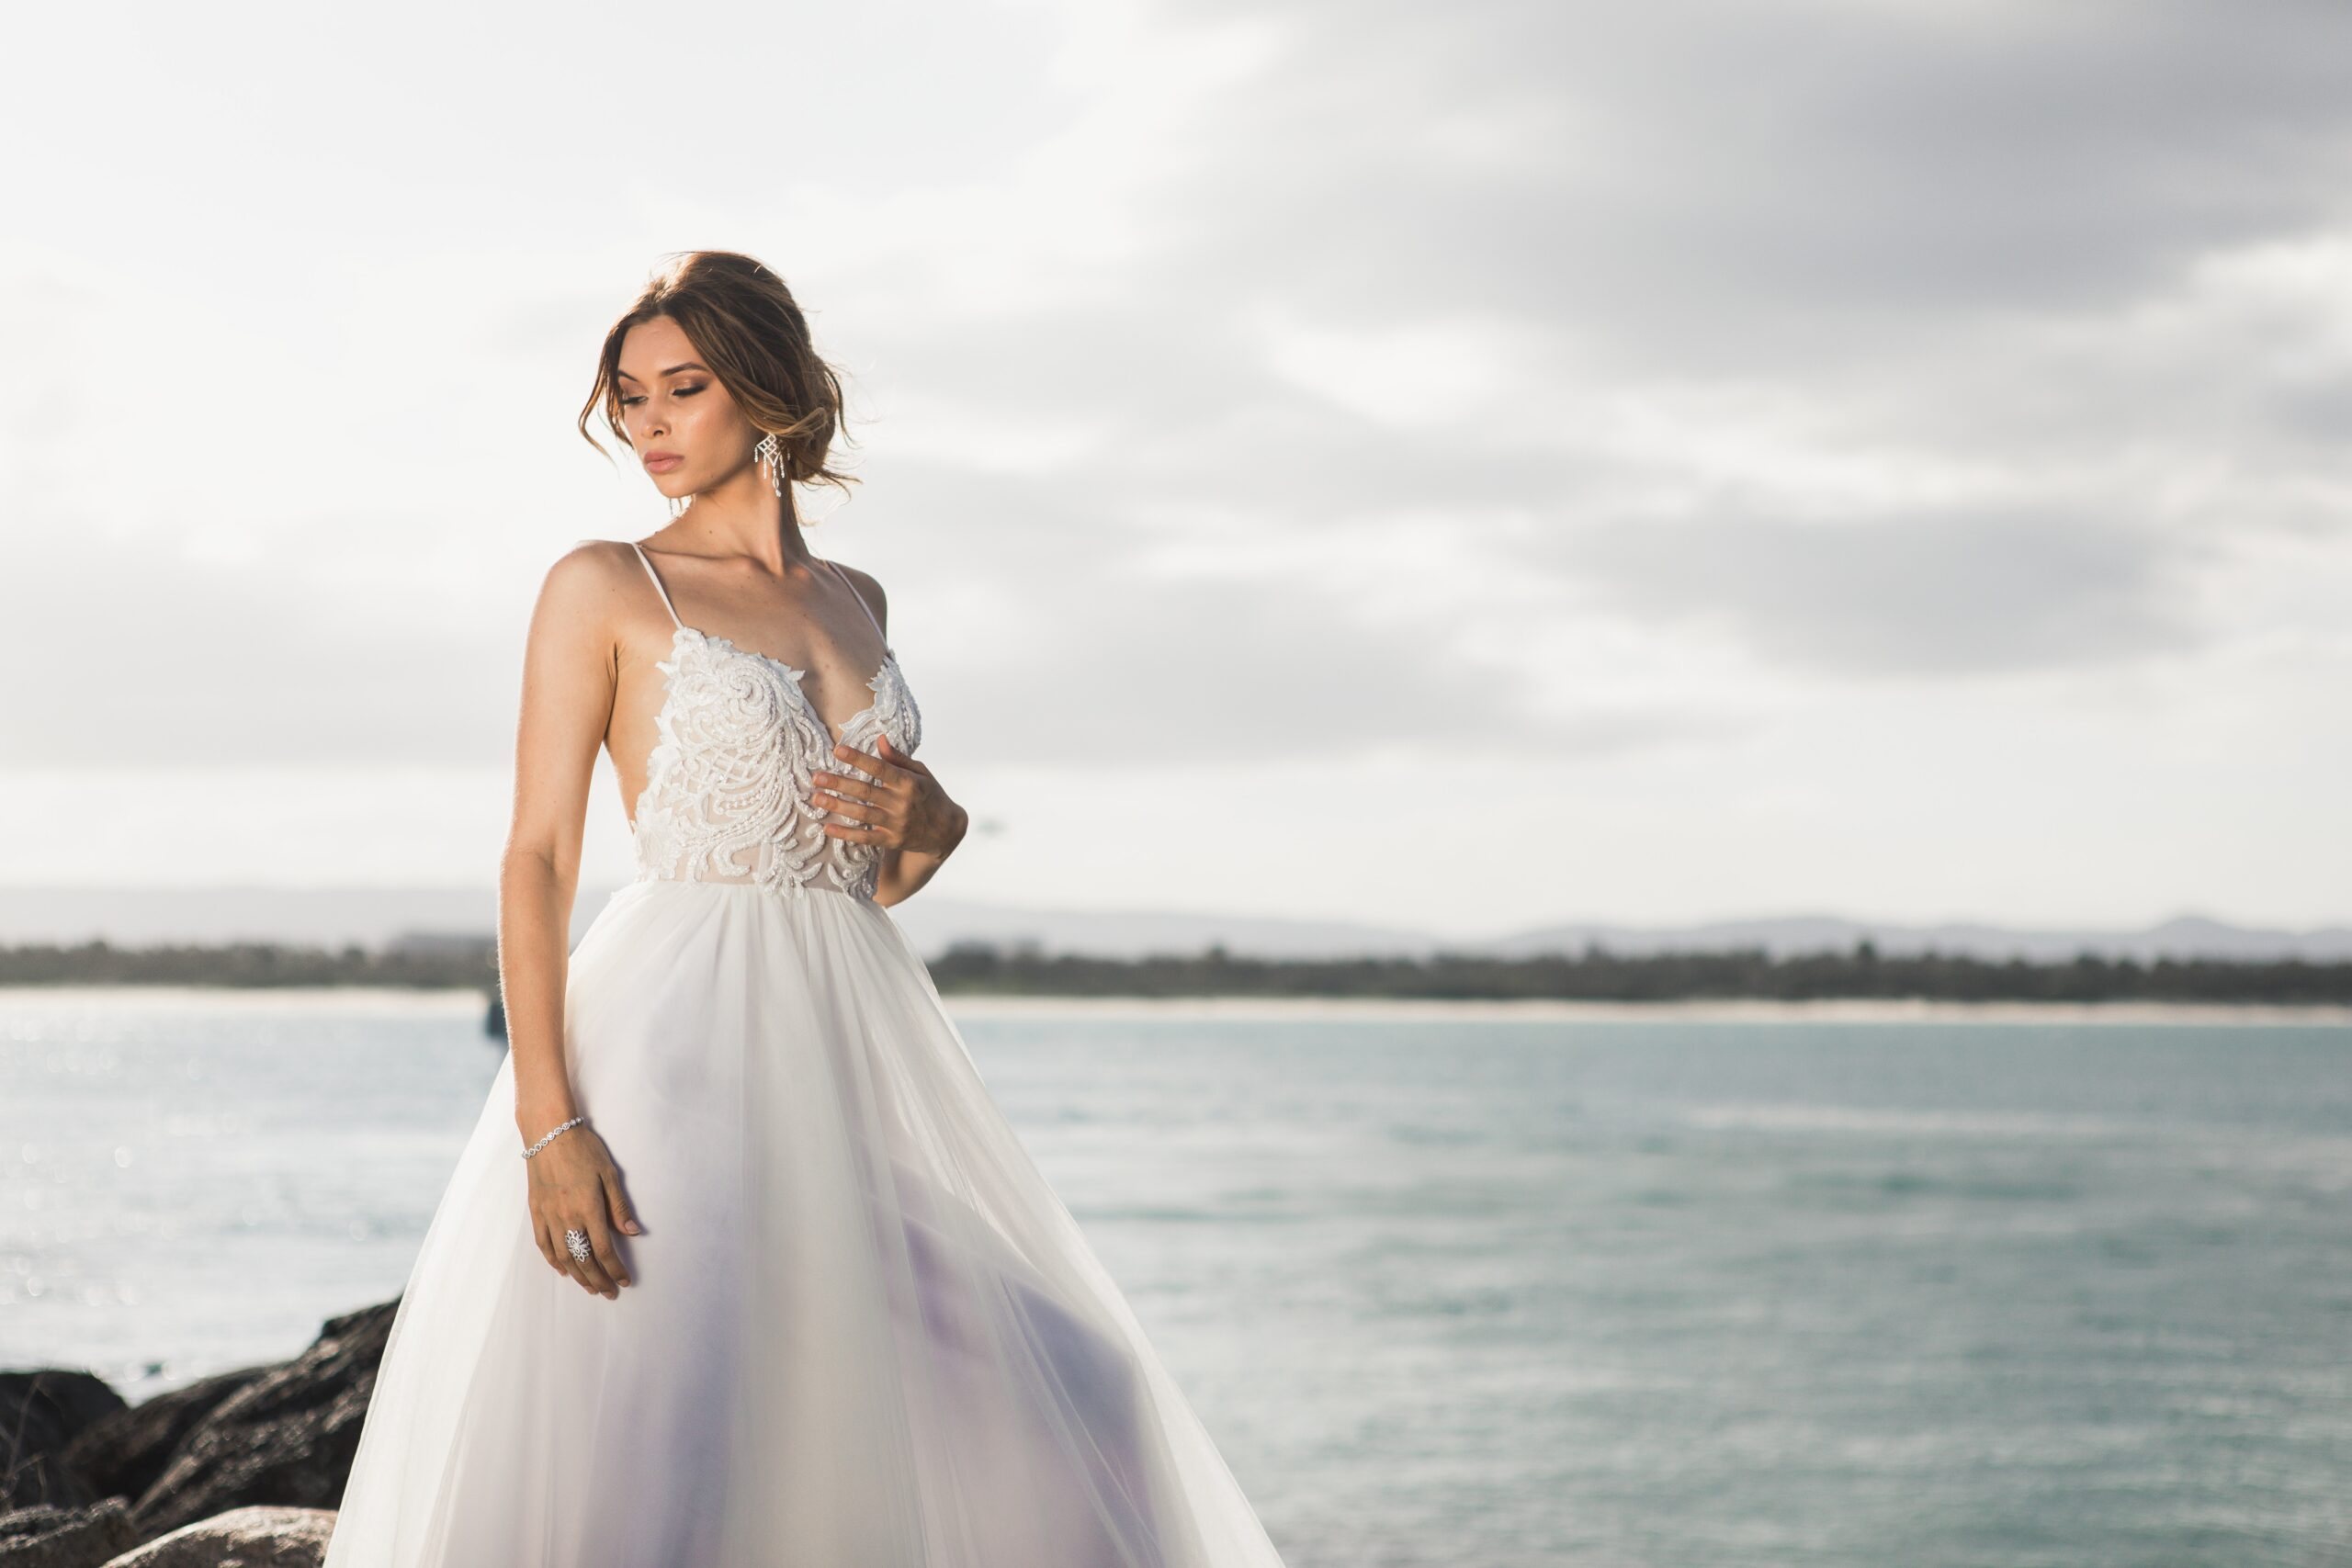 7 Tips for Beating the Post-Wedding Blues